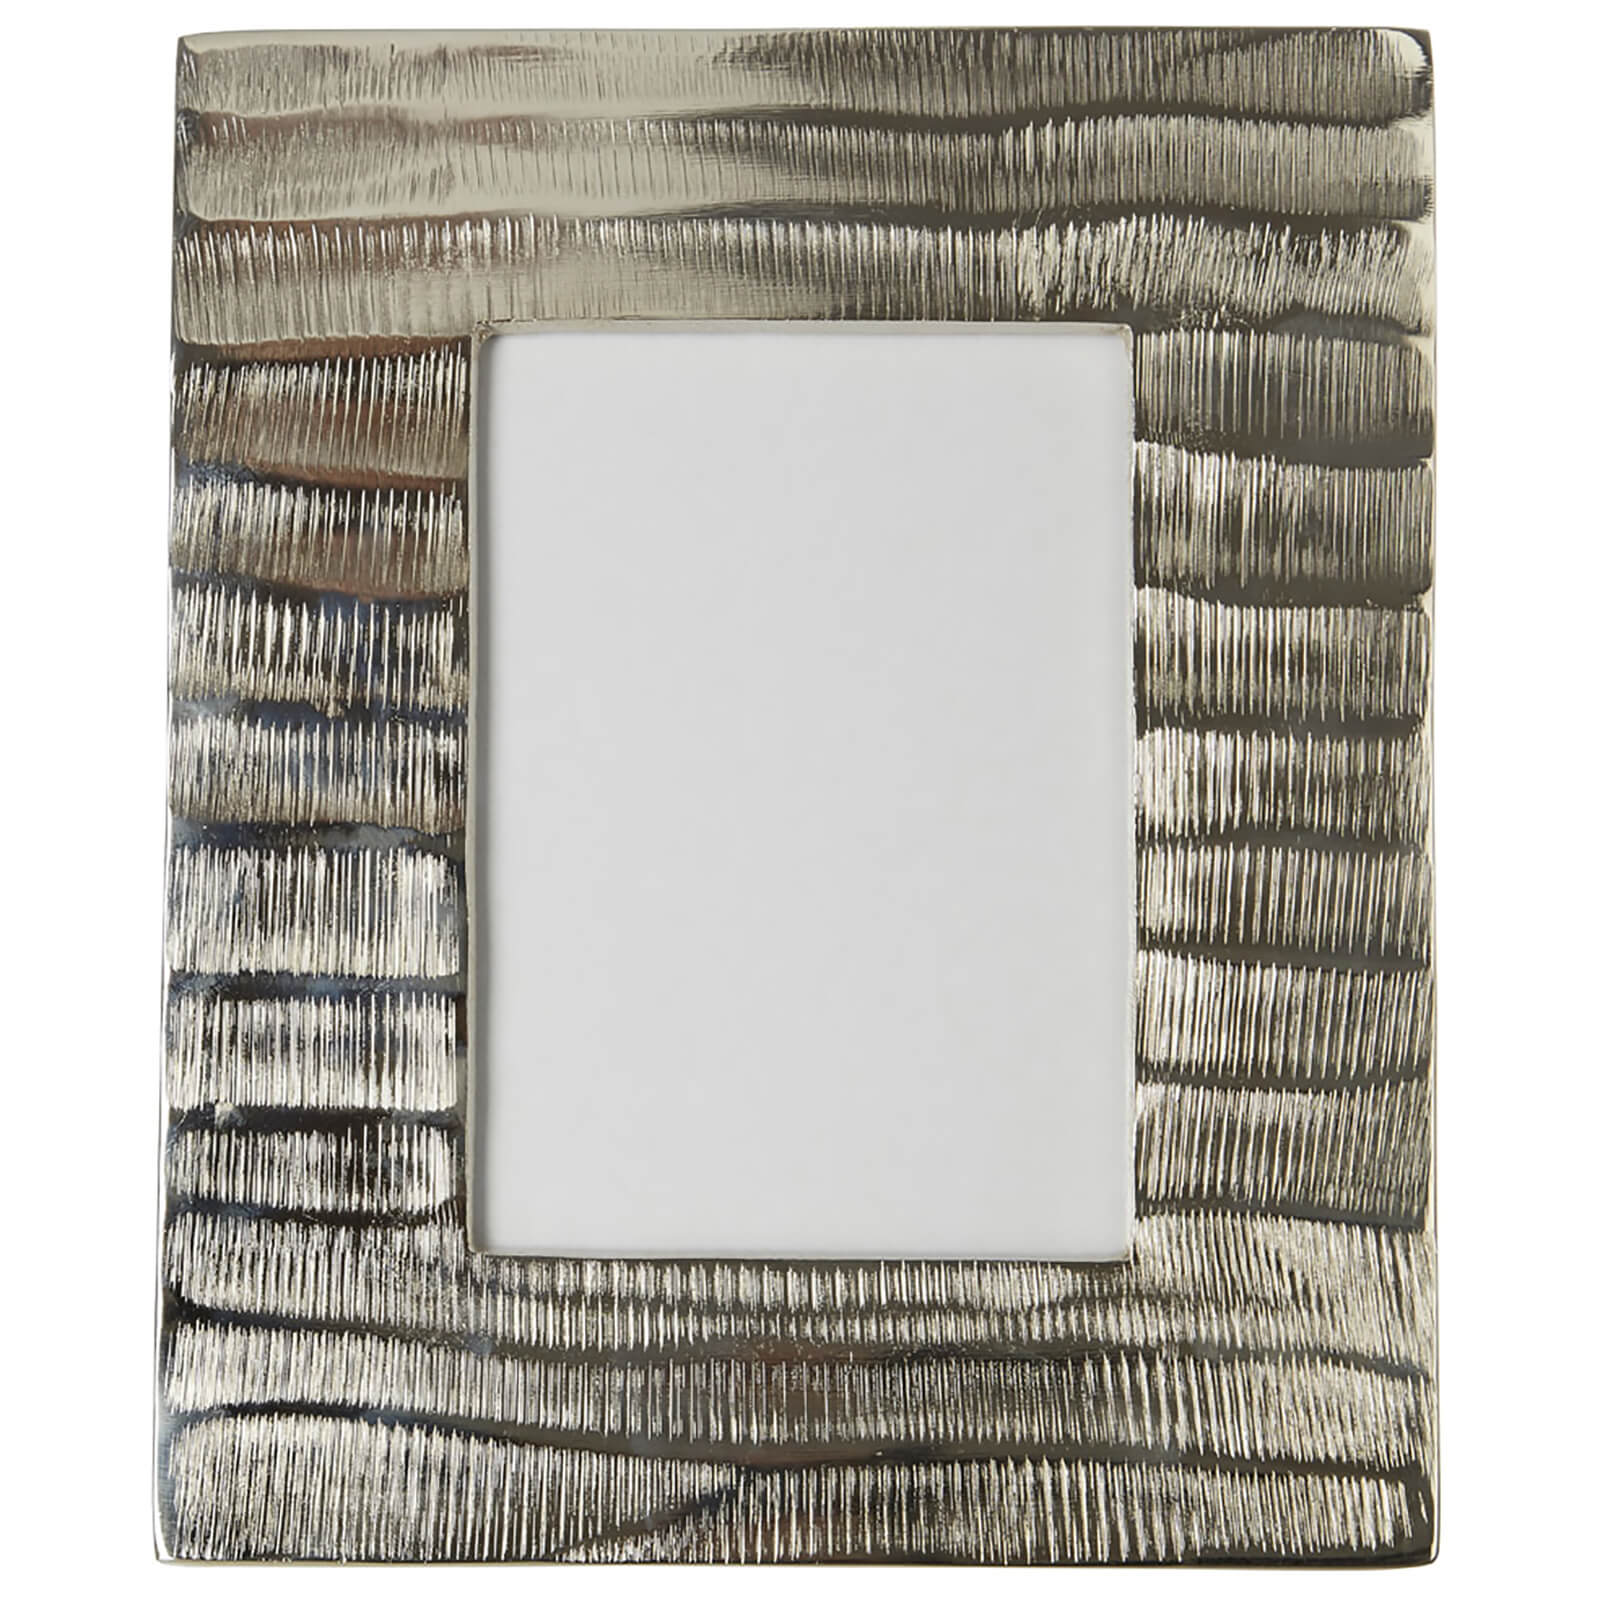 "Fifty Five South Kensington Townhouse Photo Frame - Grind Nickel Finish 5"" x 7"""